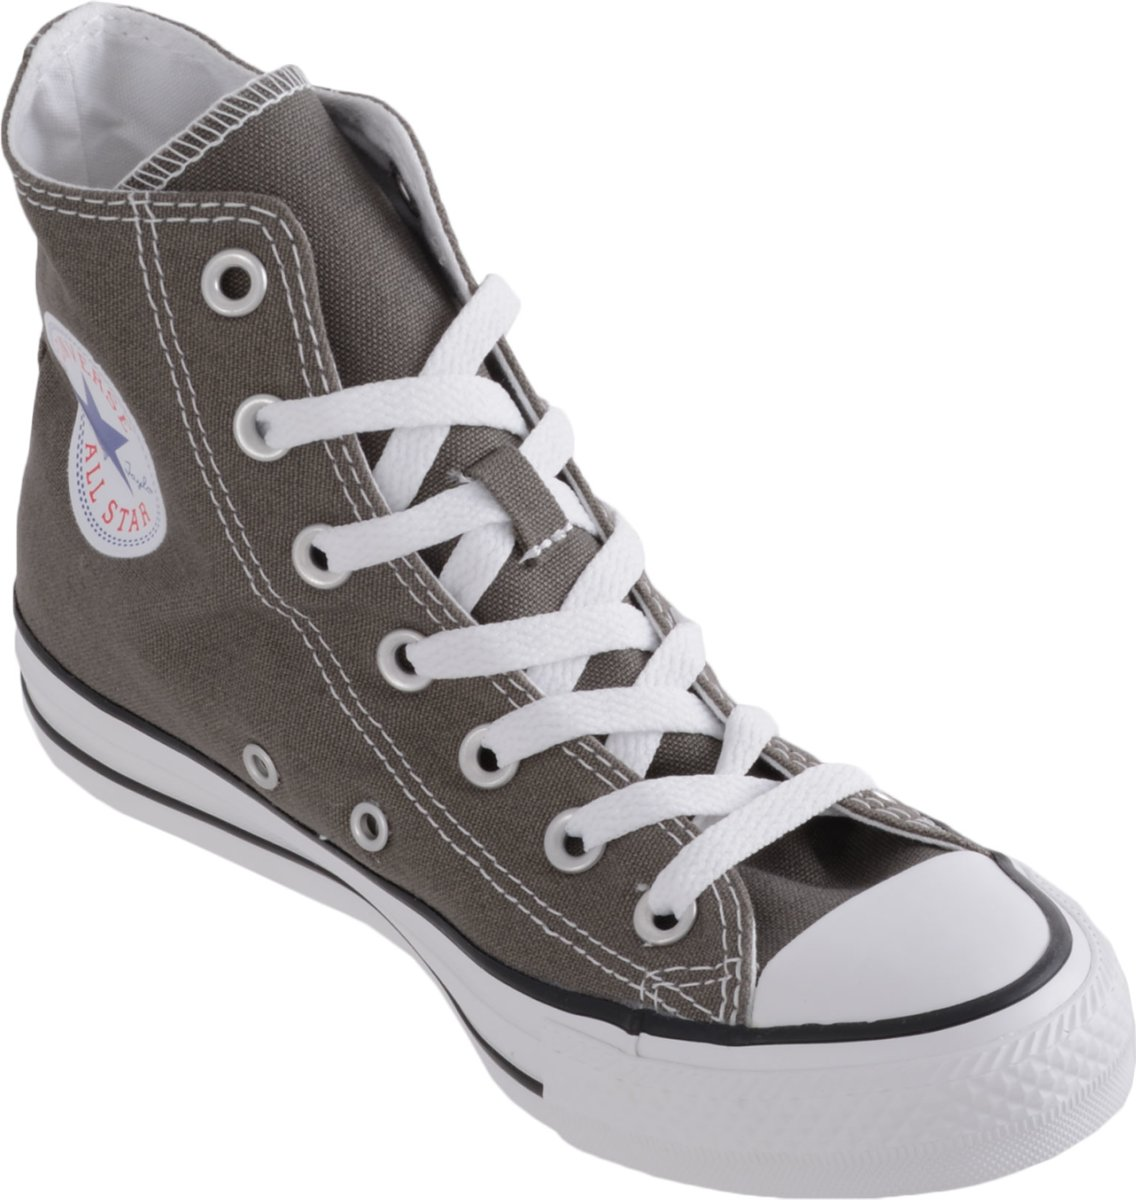 Converse Chuck Taylor All Star Sneakers Hoog Unisex - Charcoal - Maat 42